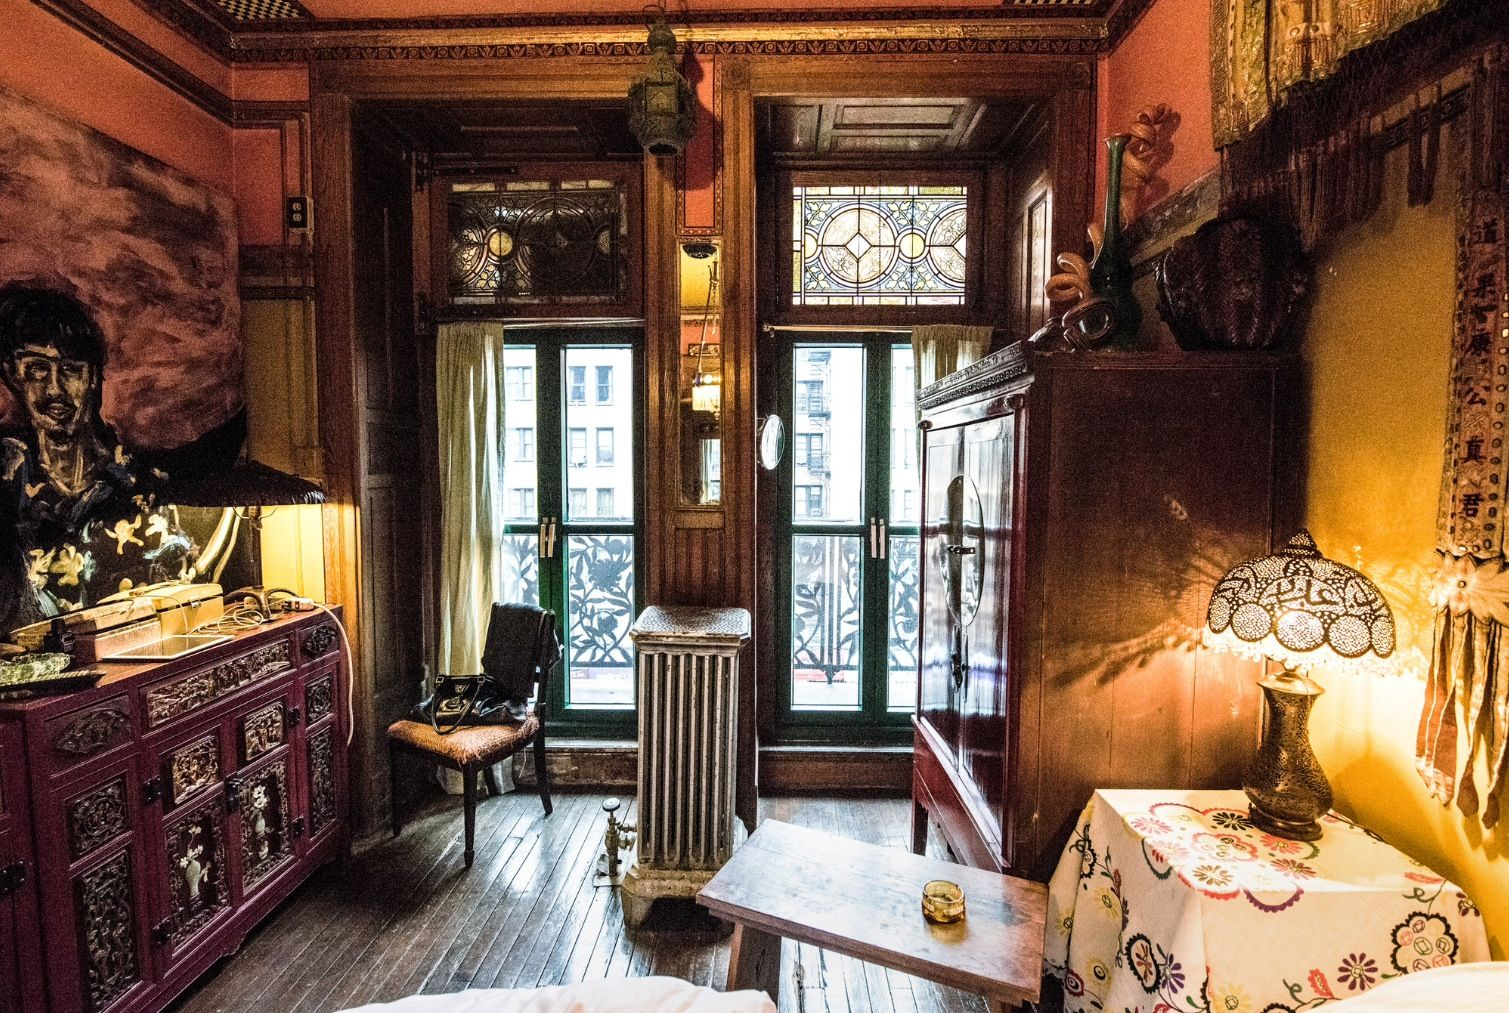 Suzanne Lipschutz Chelsea Hotel Apartment From New York Times